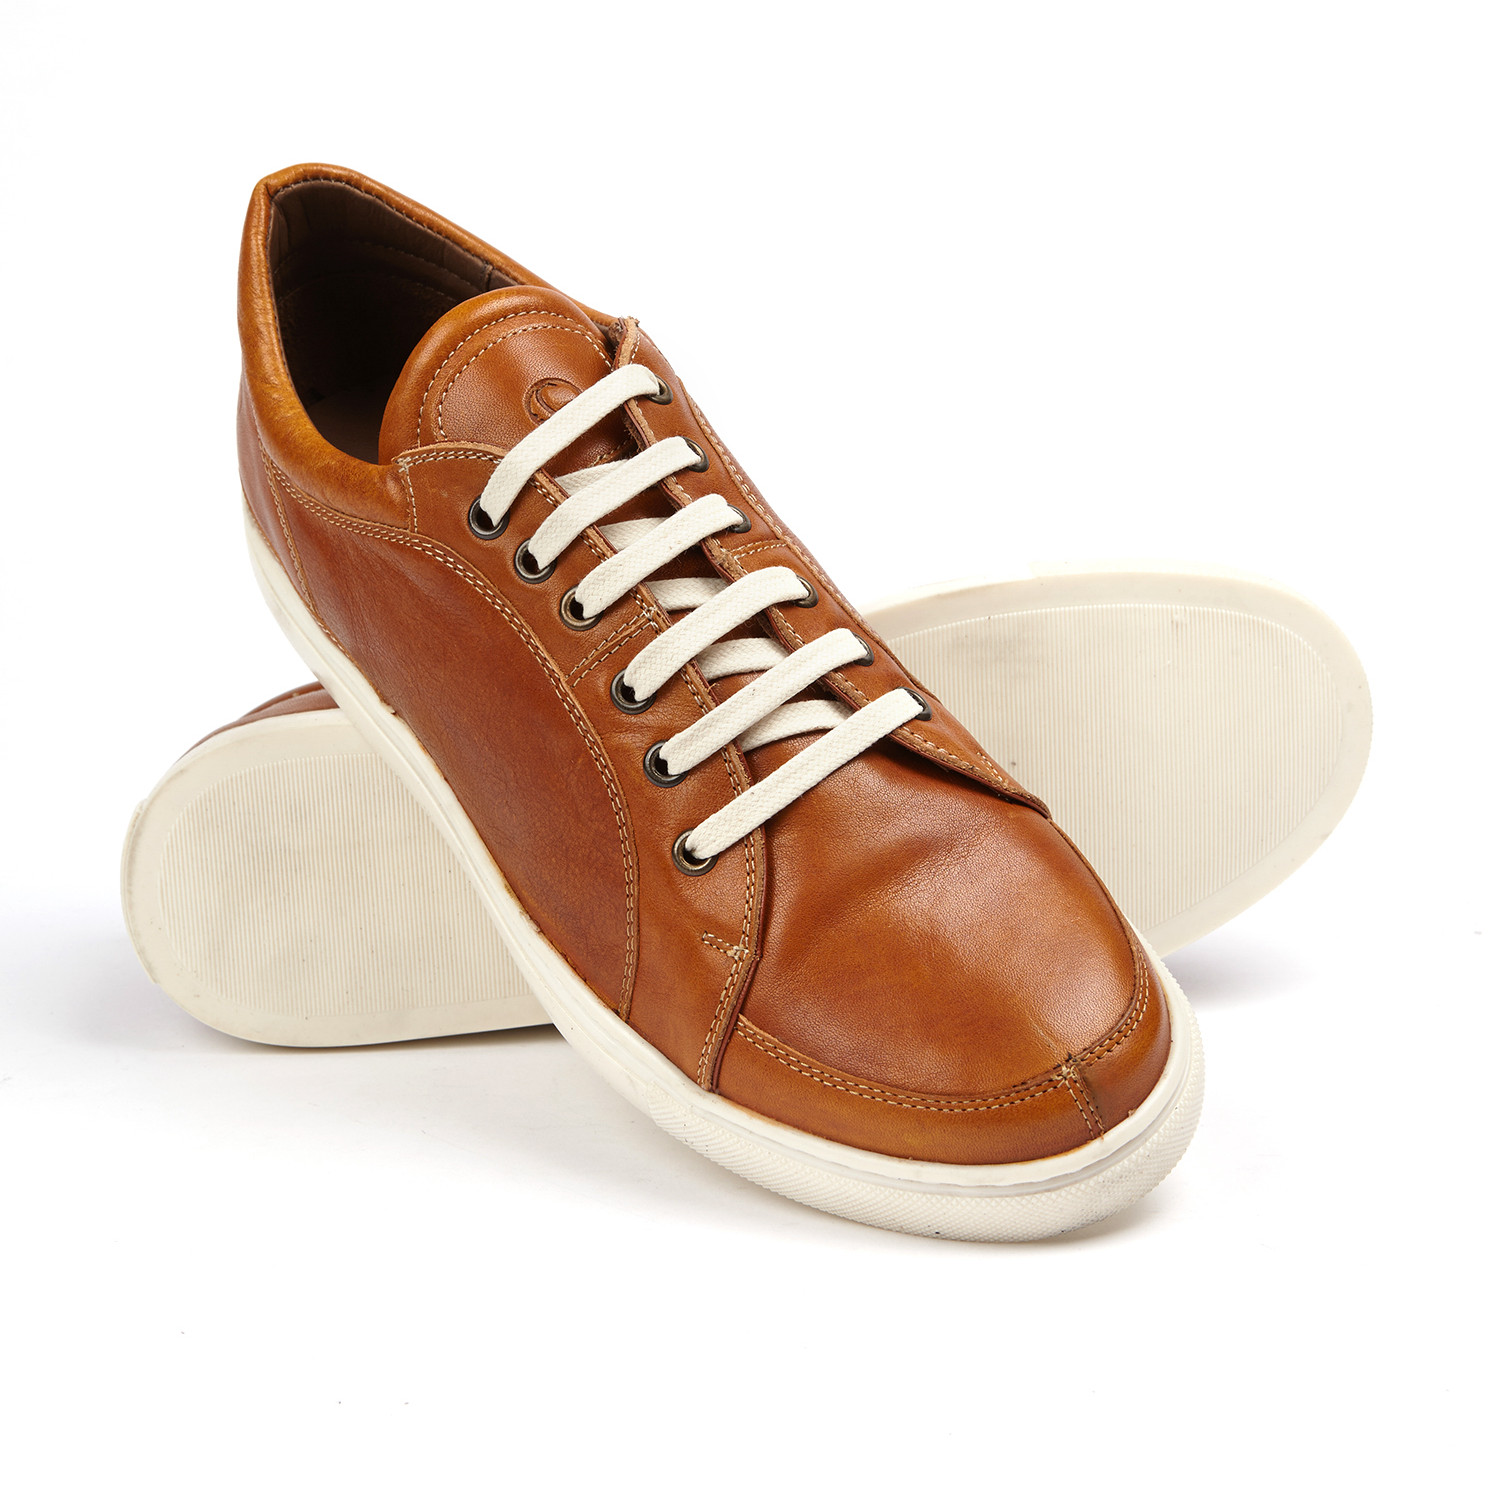 Greyson Leather Sneakers // Tan (US: 10